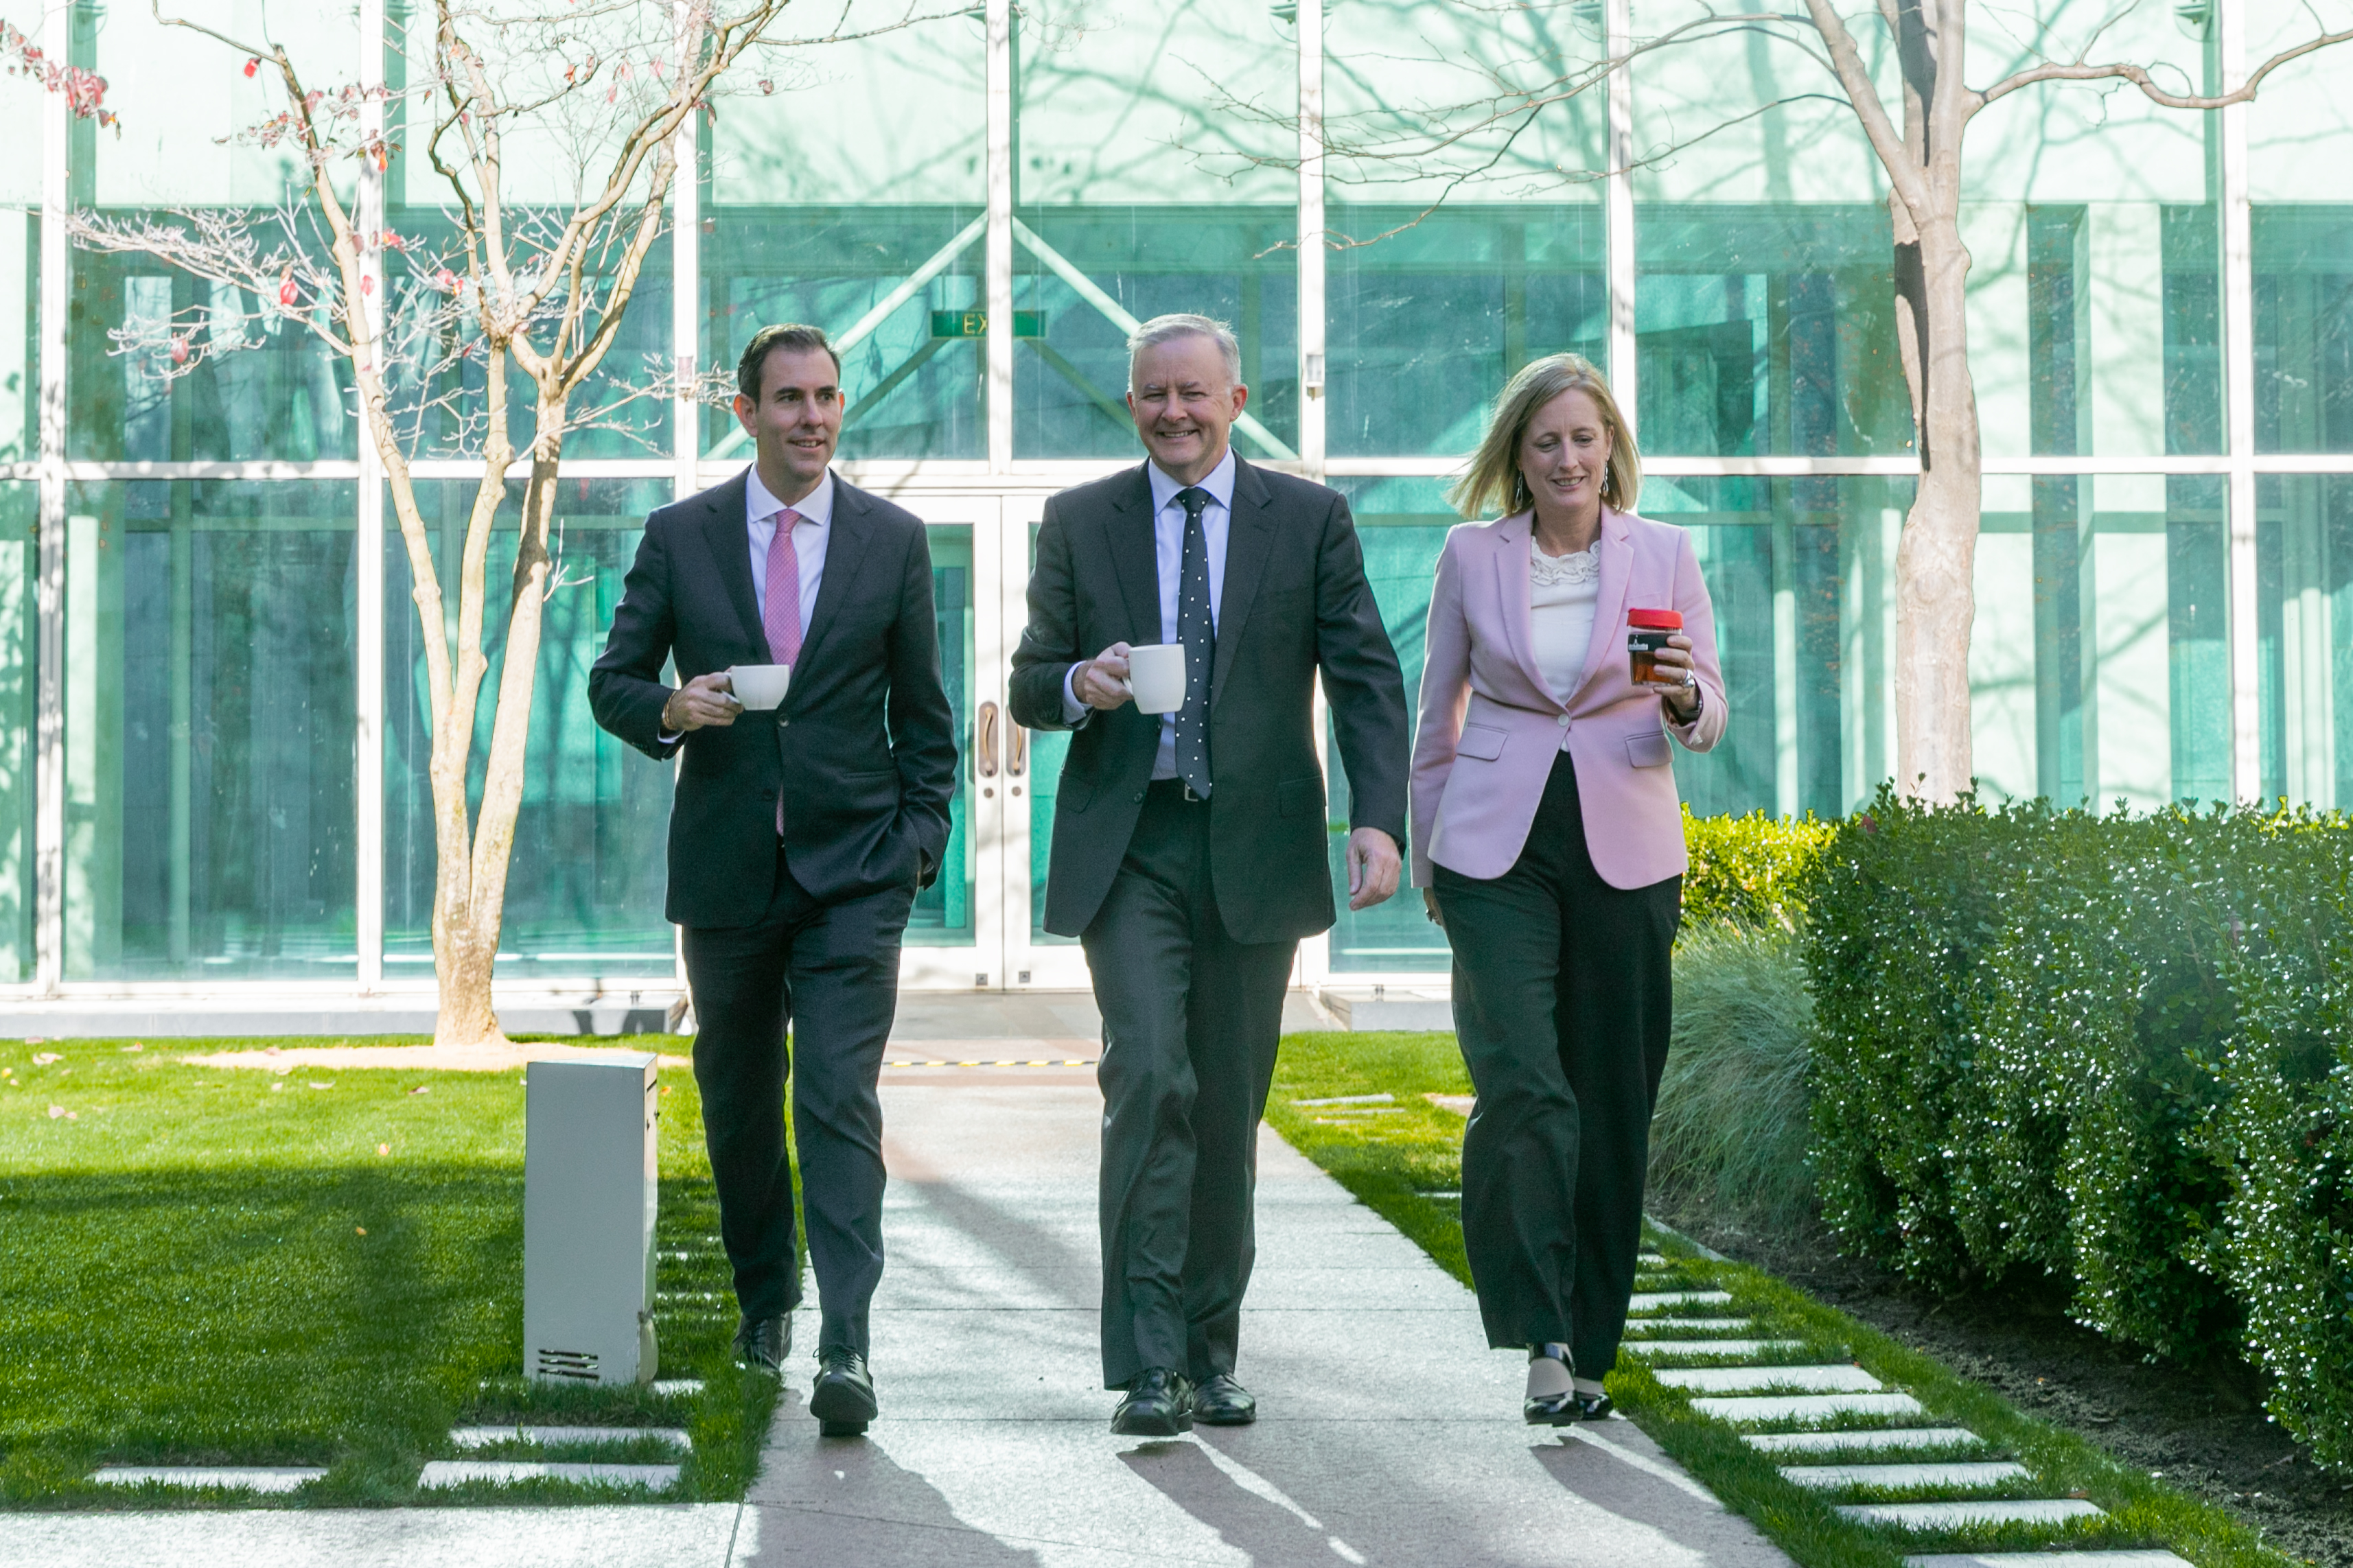 BUDGET-IN-REPLY 2021– ALBANESE'S LABOR: ON YOUR SIDE